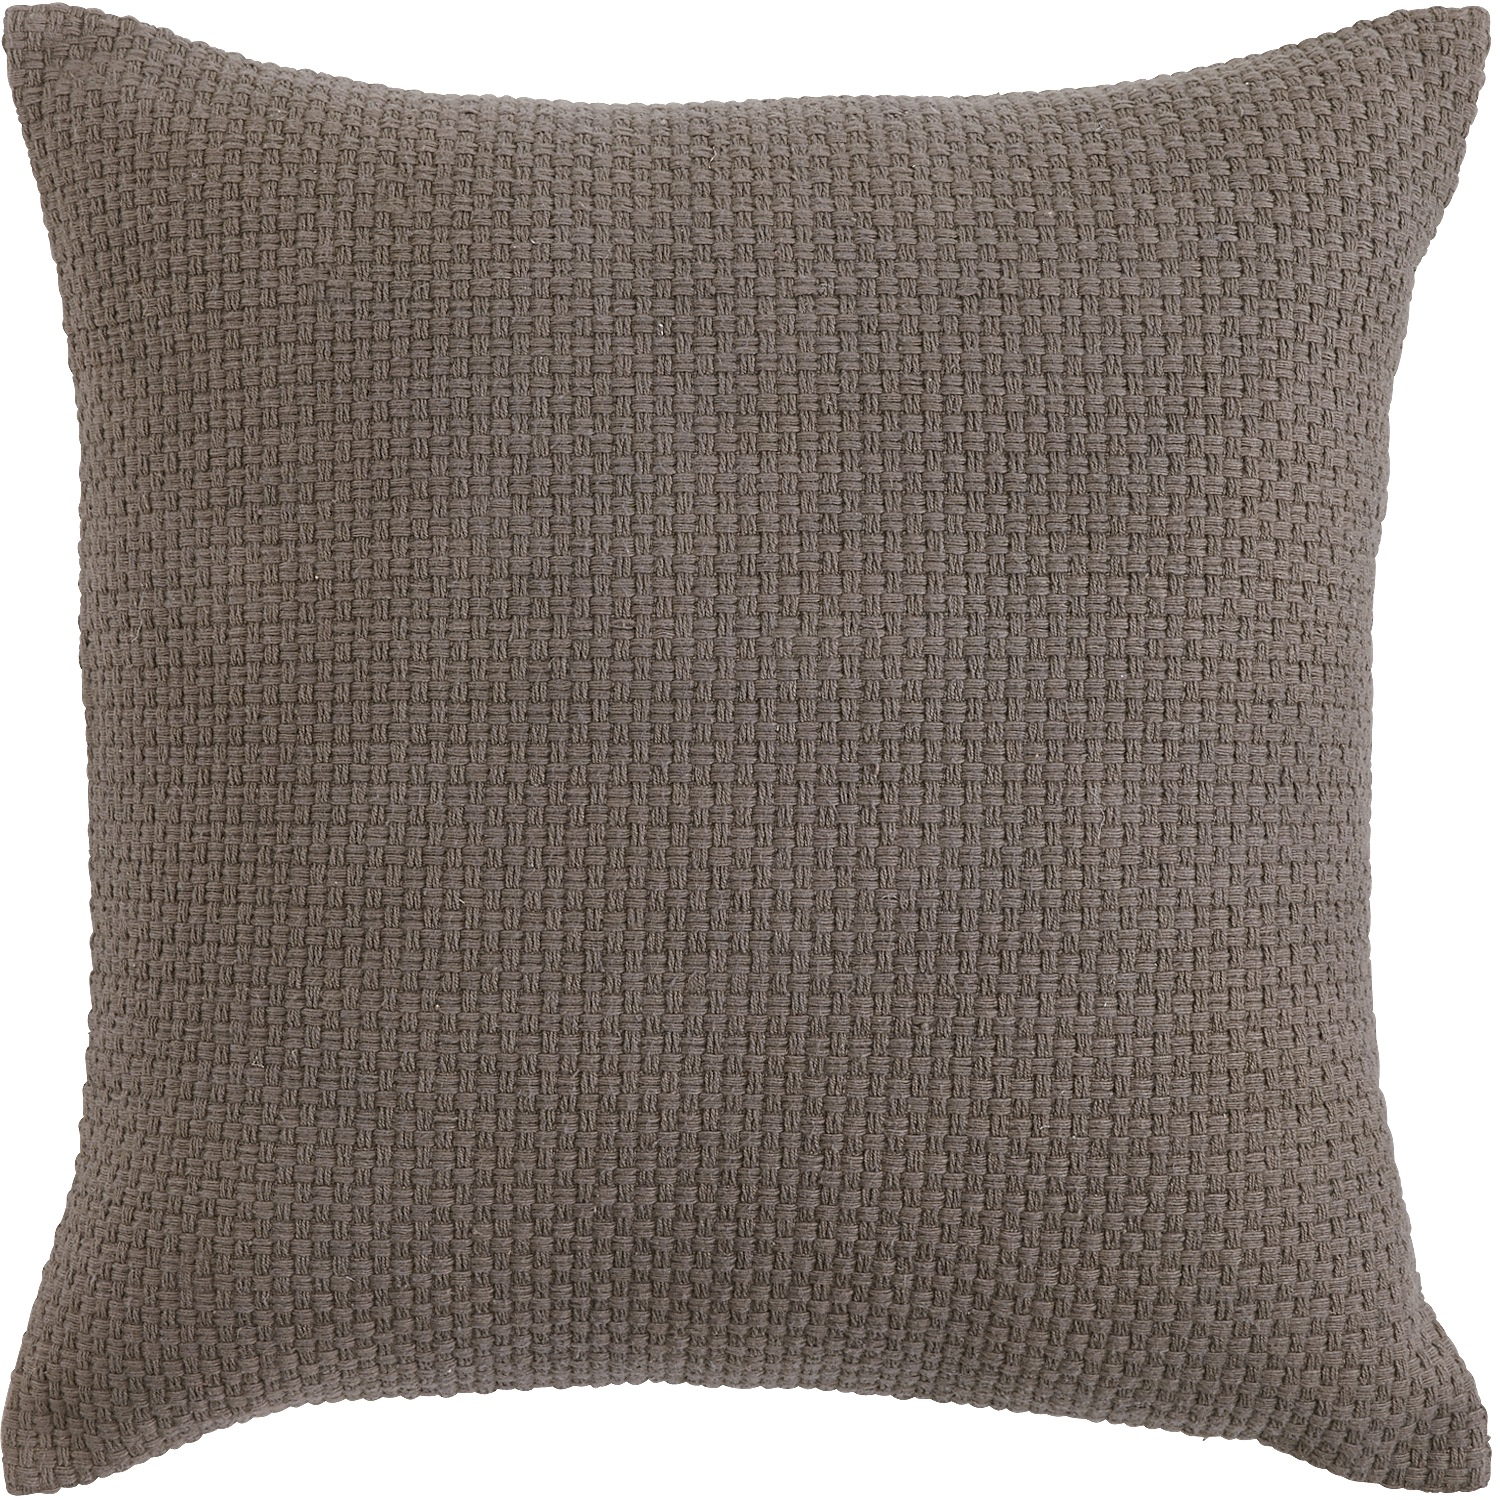 Raleigh Mink Pillow